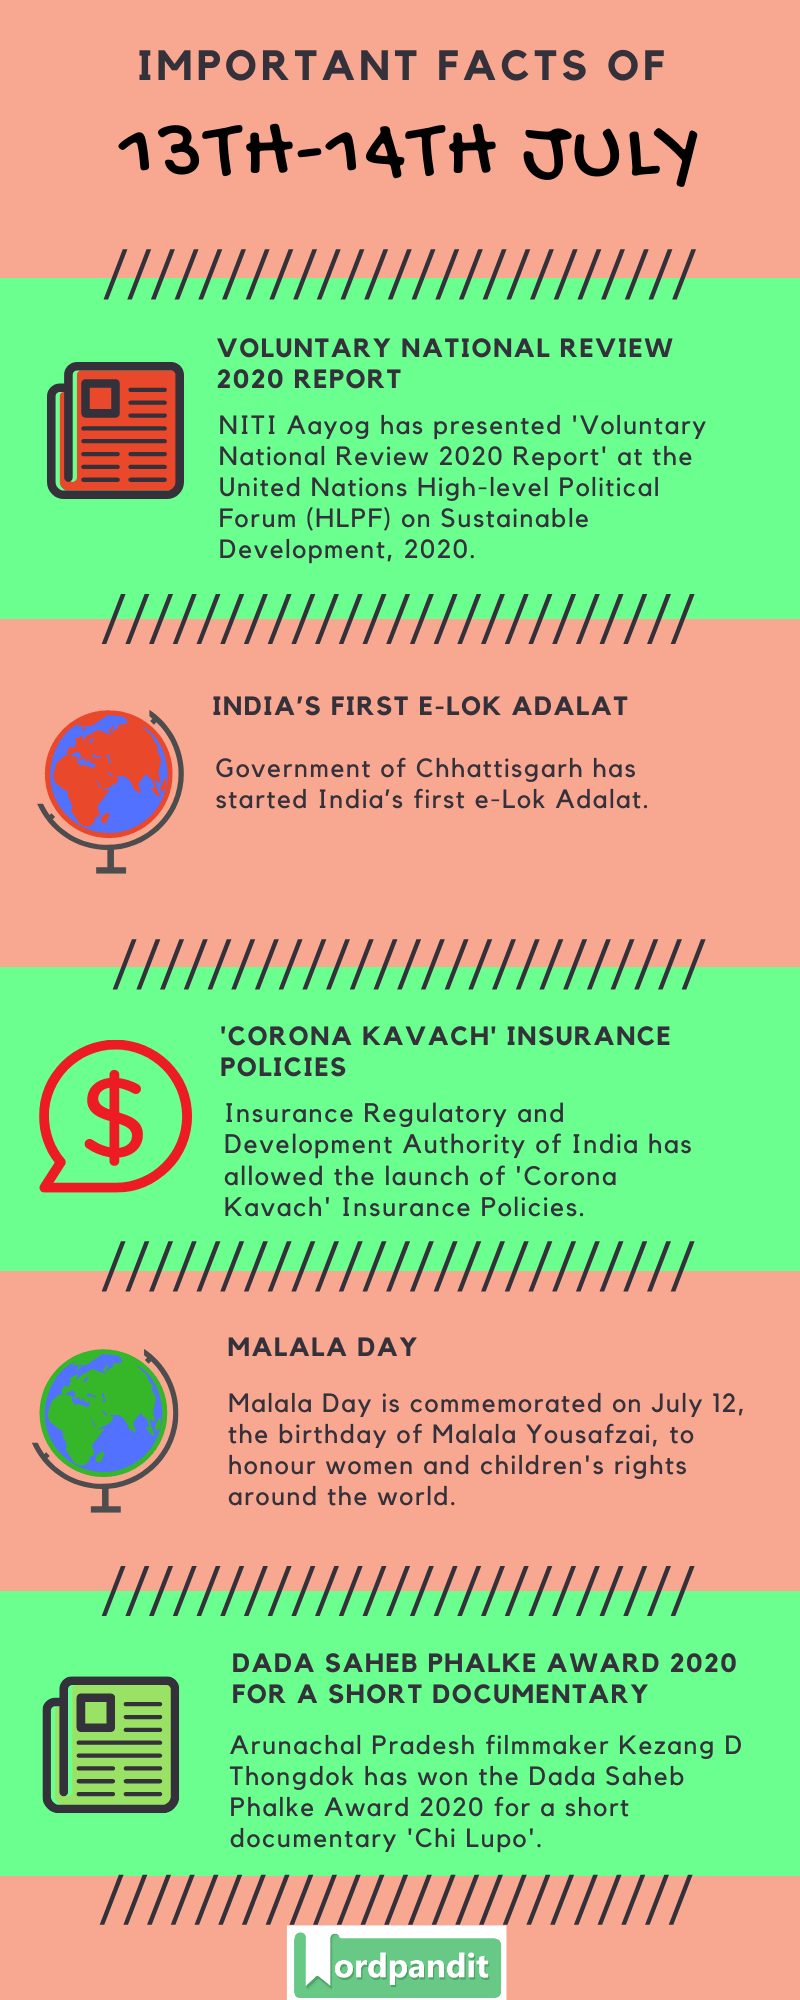 Daily Current Affairs 13th-14th July 2020 Current Affairs Quiz 13th-14th July 2020 Current Affairs Infographic